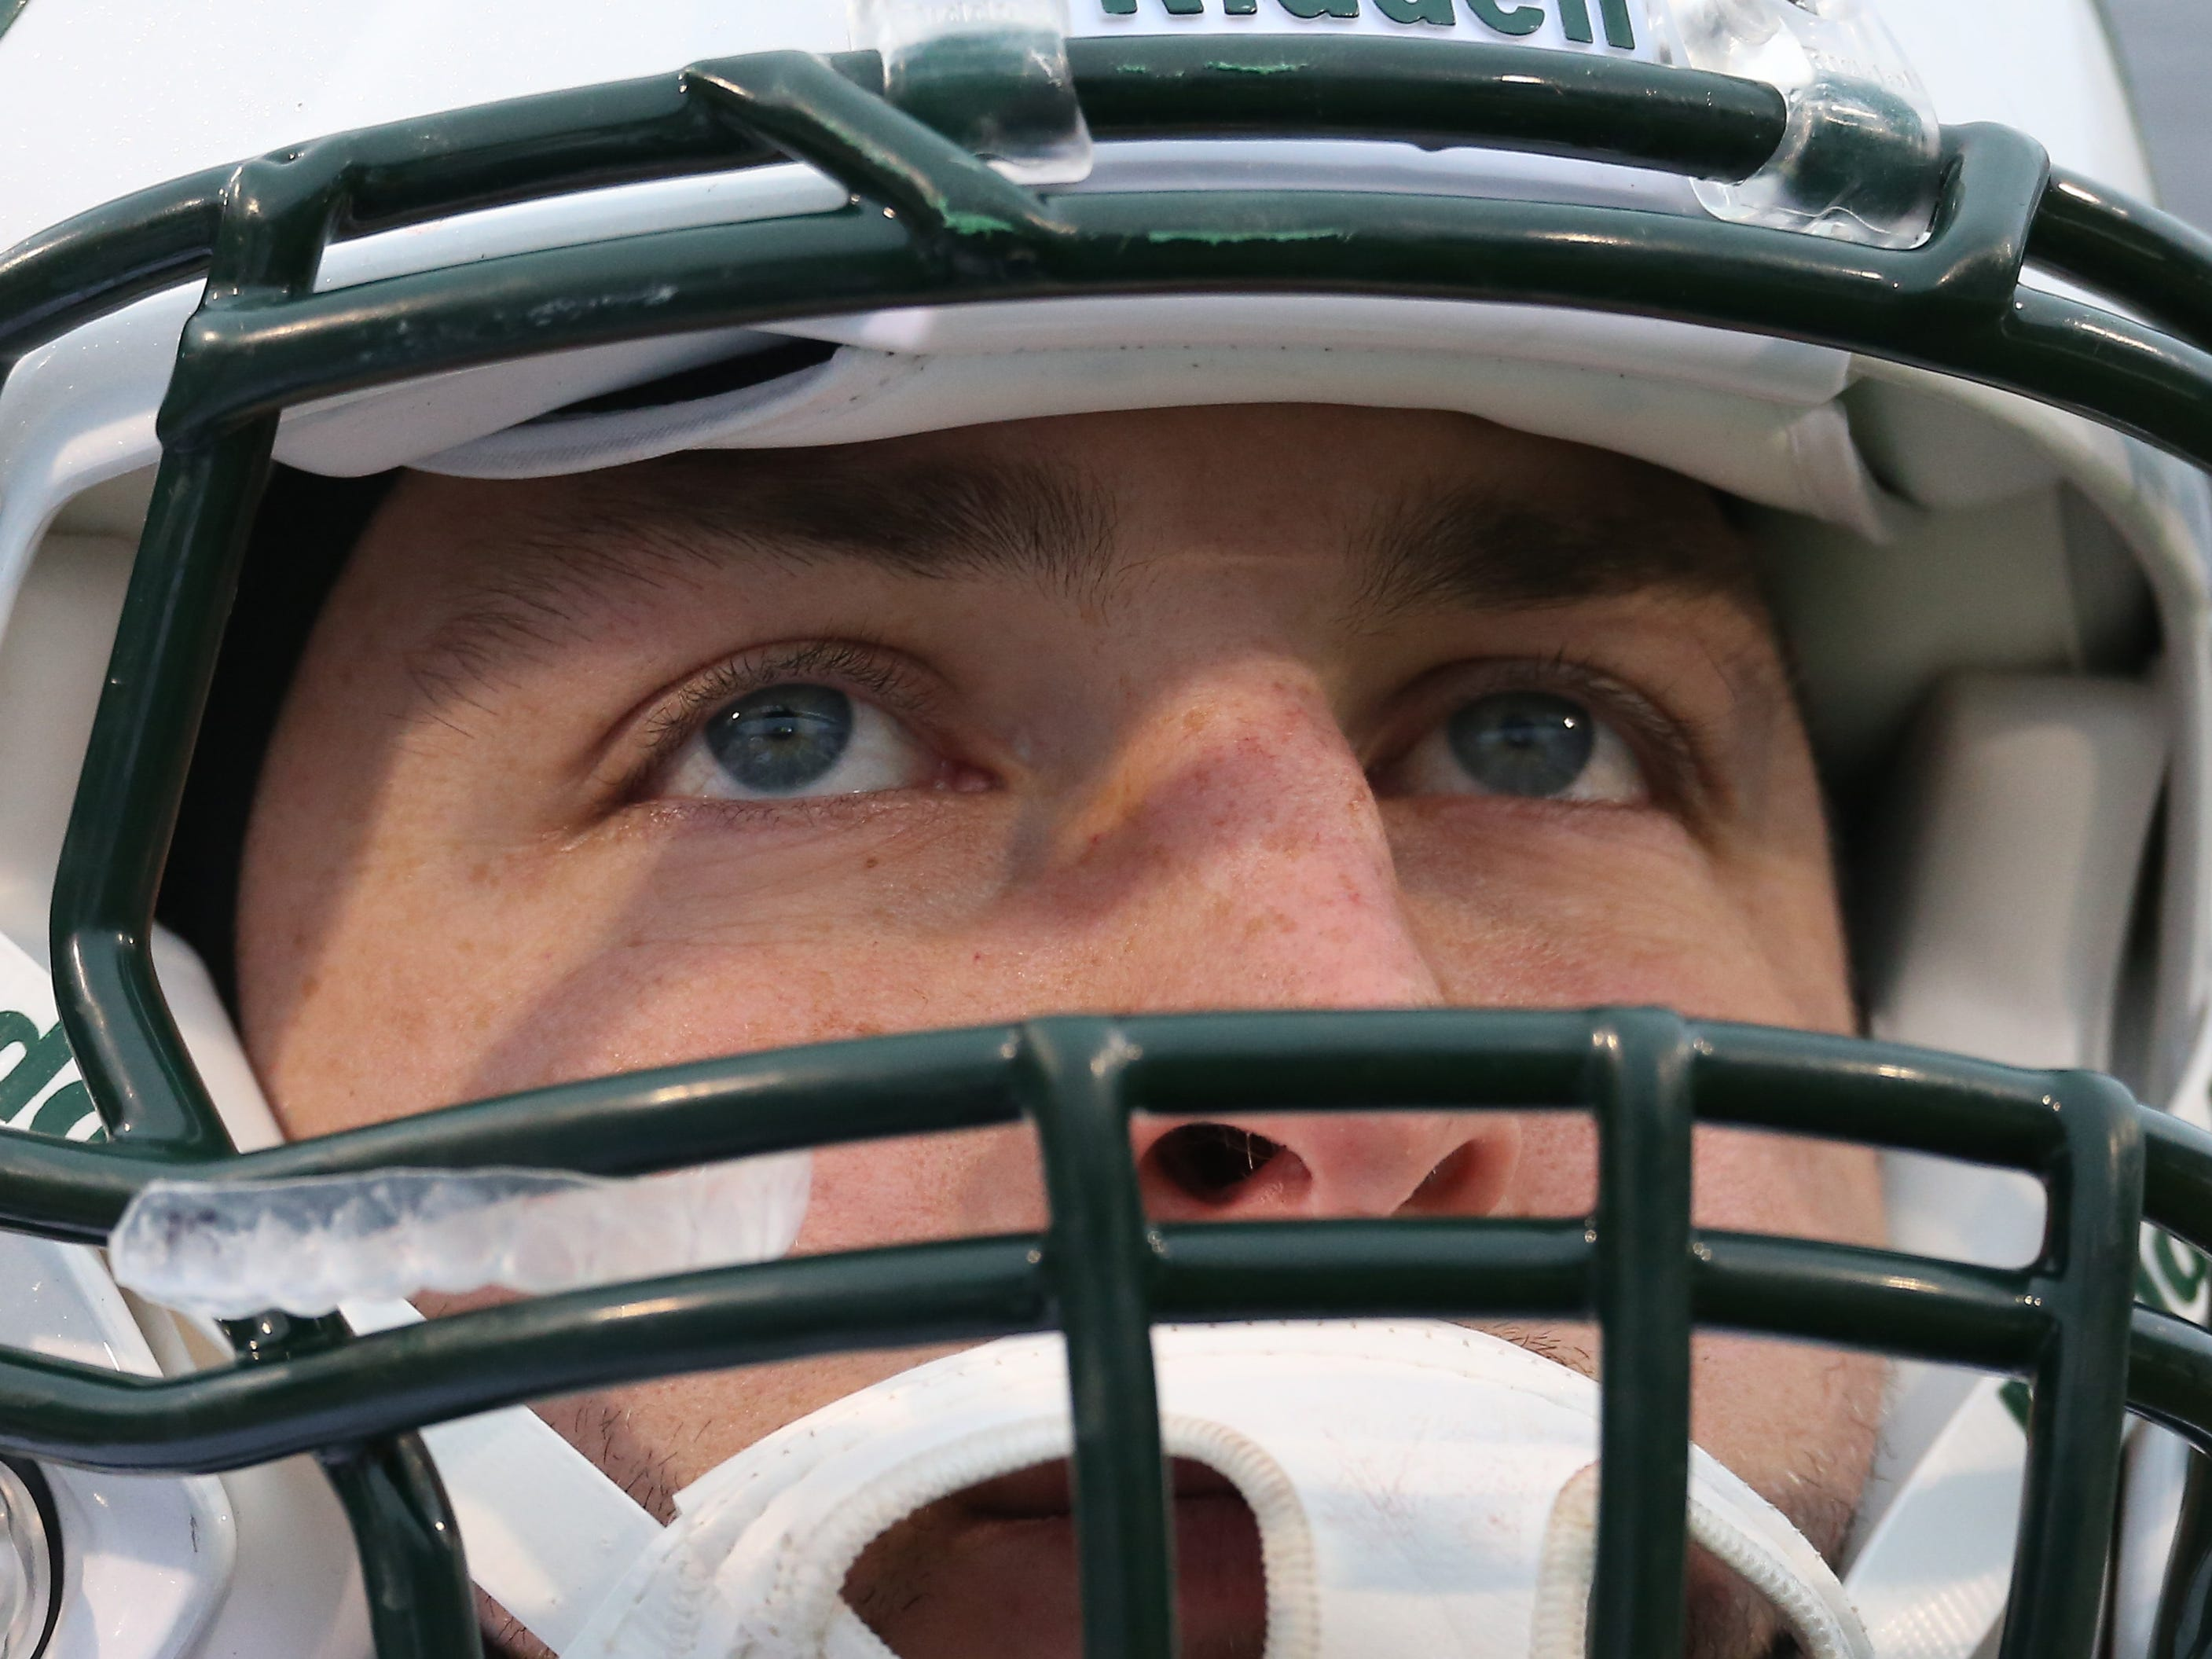 Having this face back in the NFL could actually do a lot of good for the league's image. But Tebow probably needs to also make some concessions and change positions.